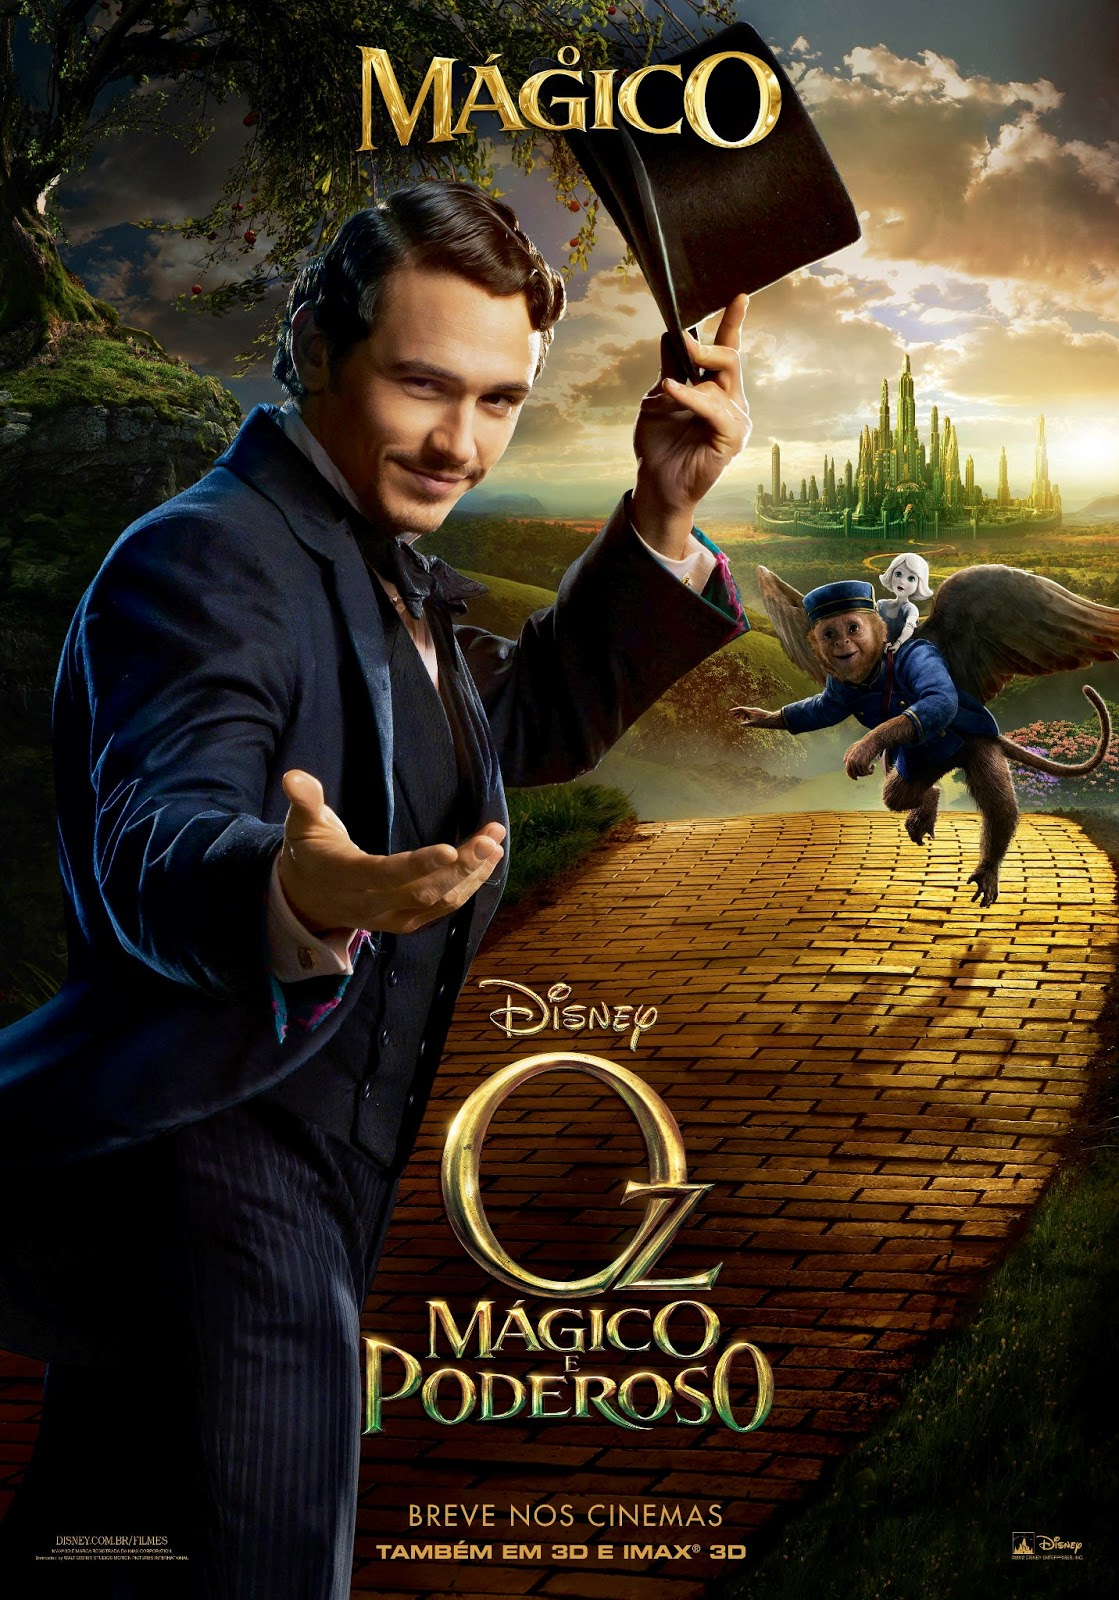 Oz: Mágico e Poderoso (Oz the Great and Powerful) 2013 Dublado - Torrent